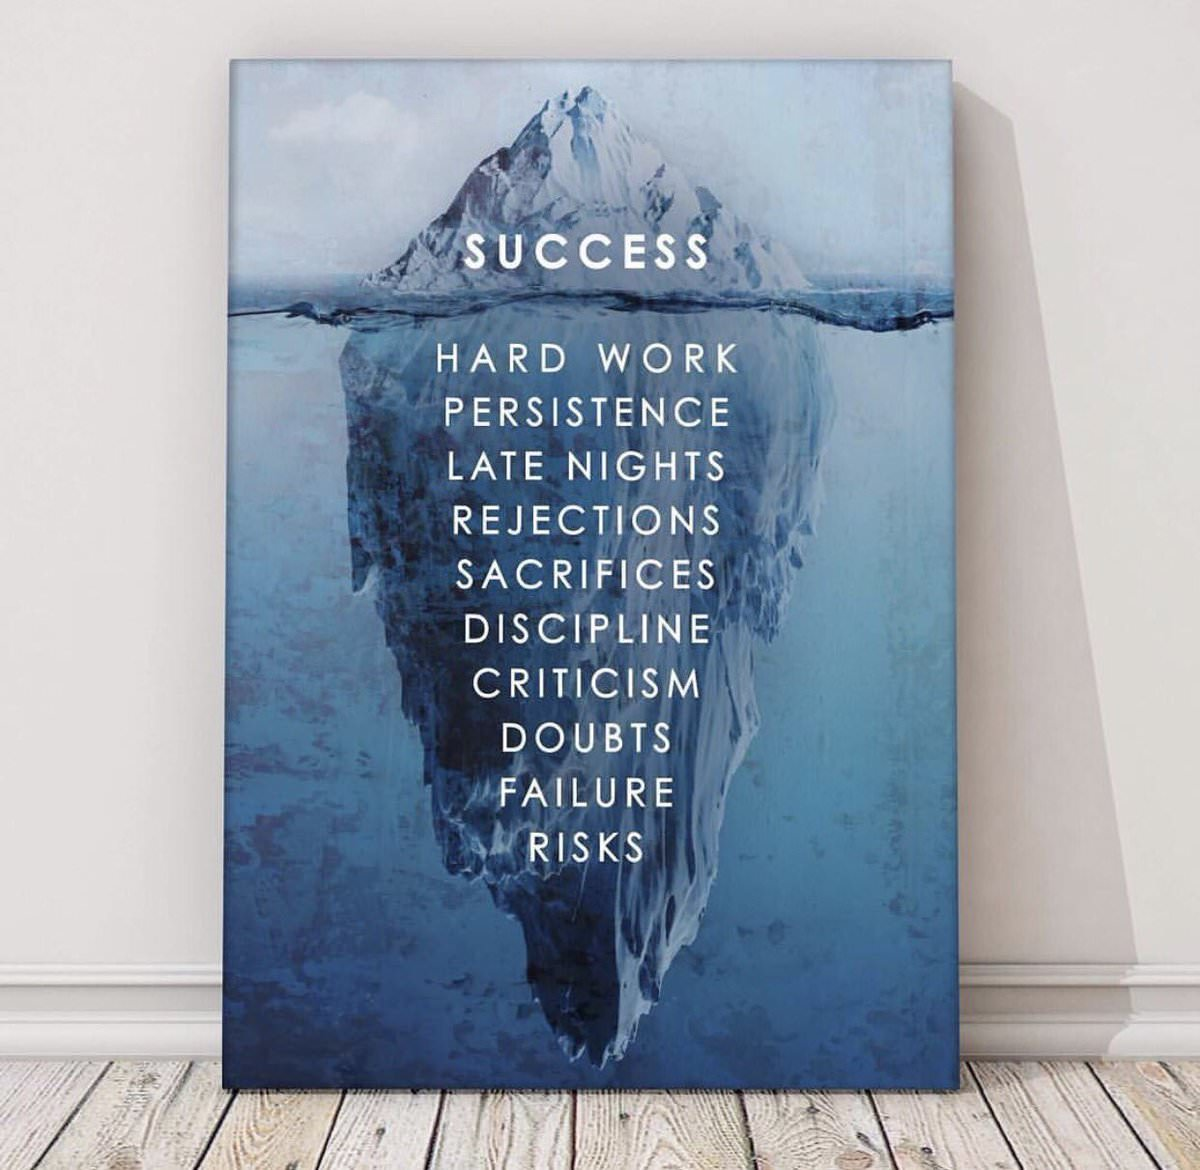 [Image] For those who Believe Success is Luck